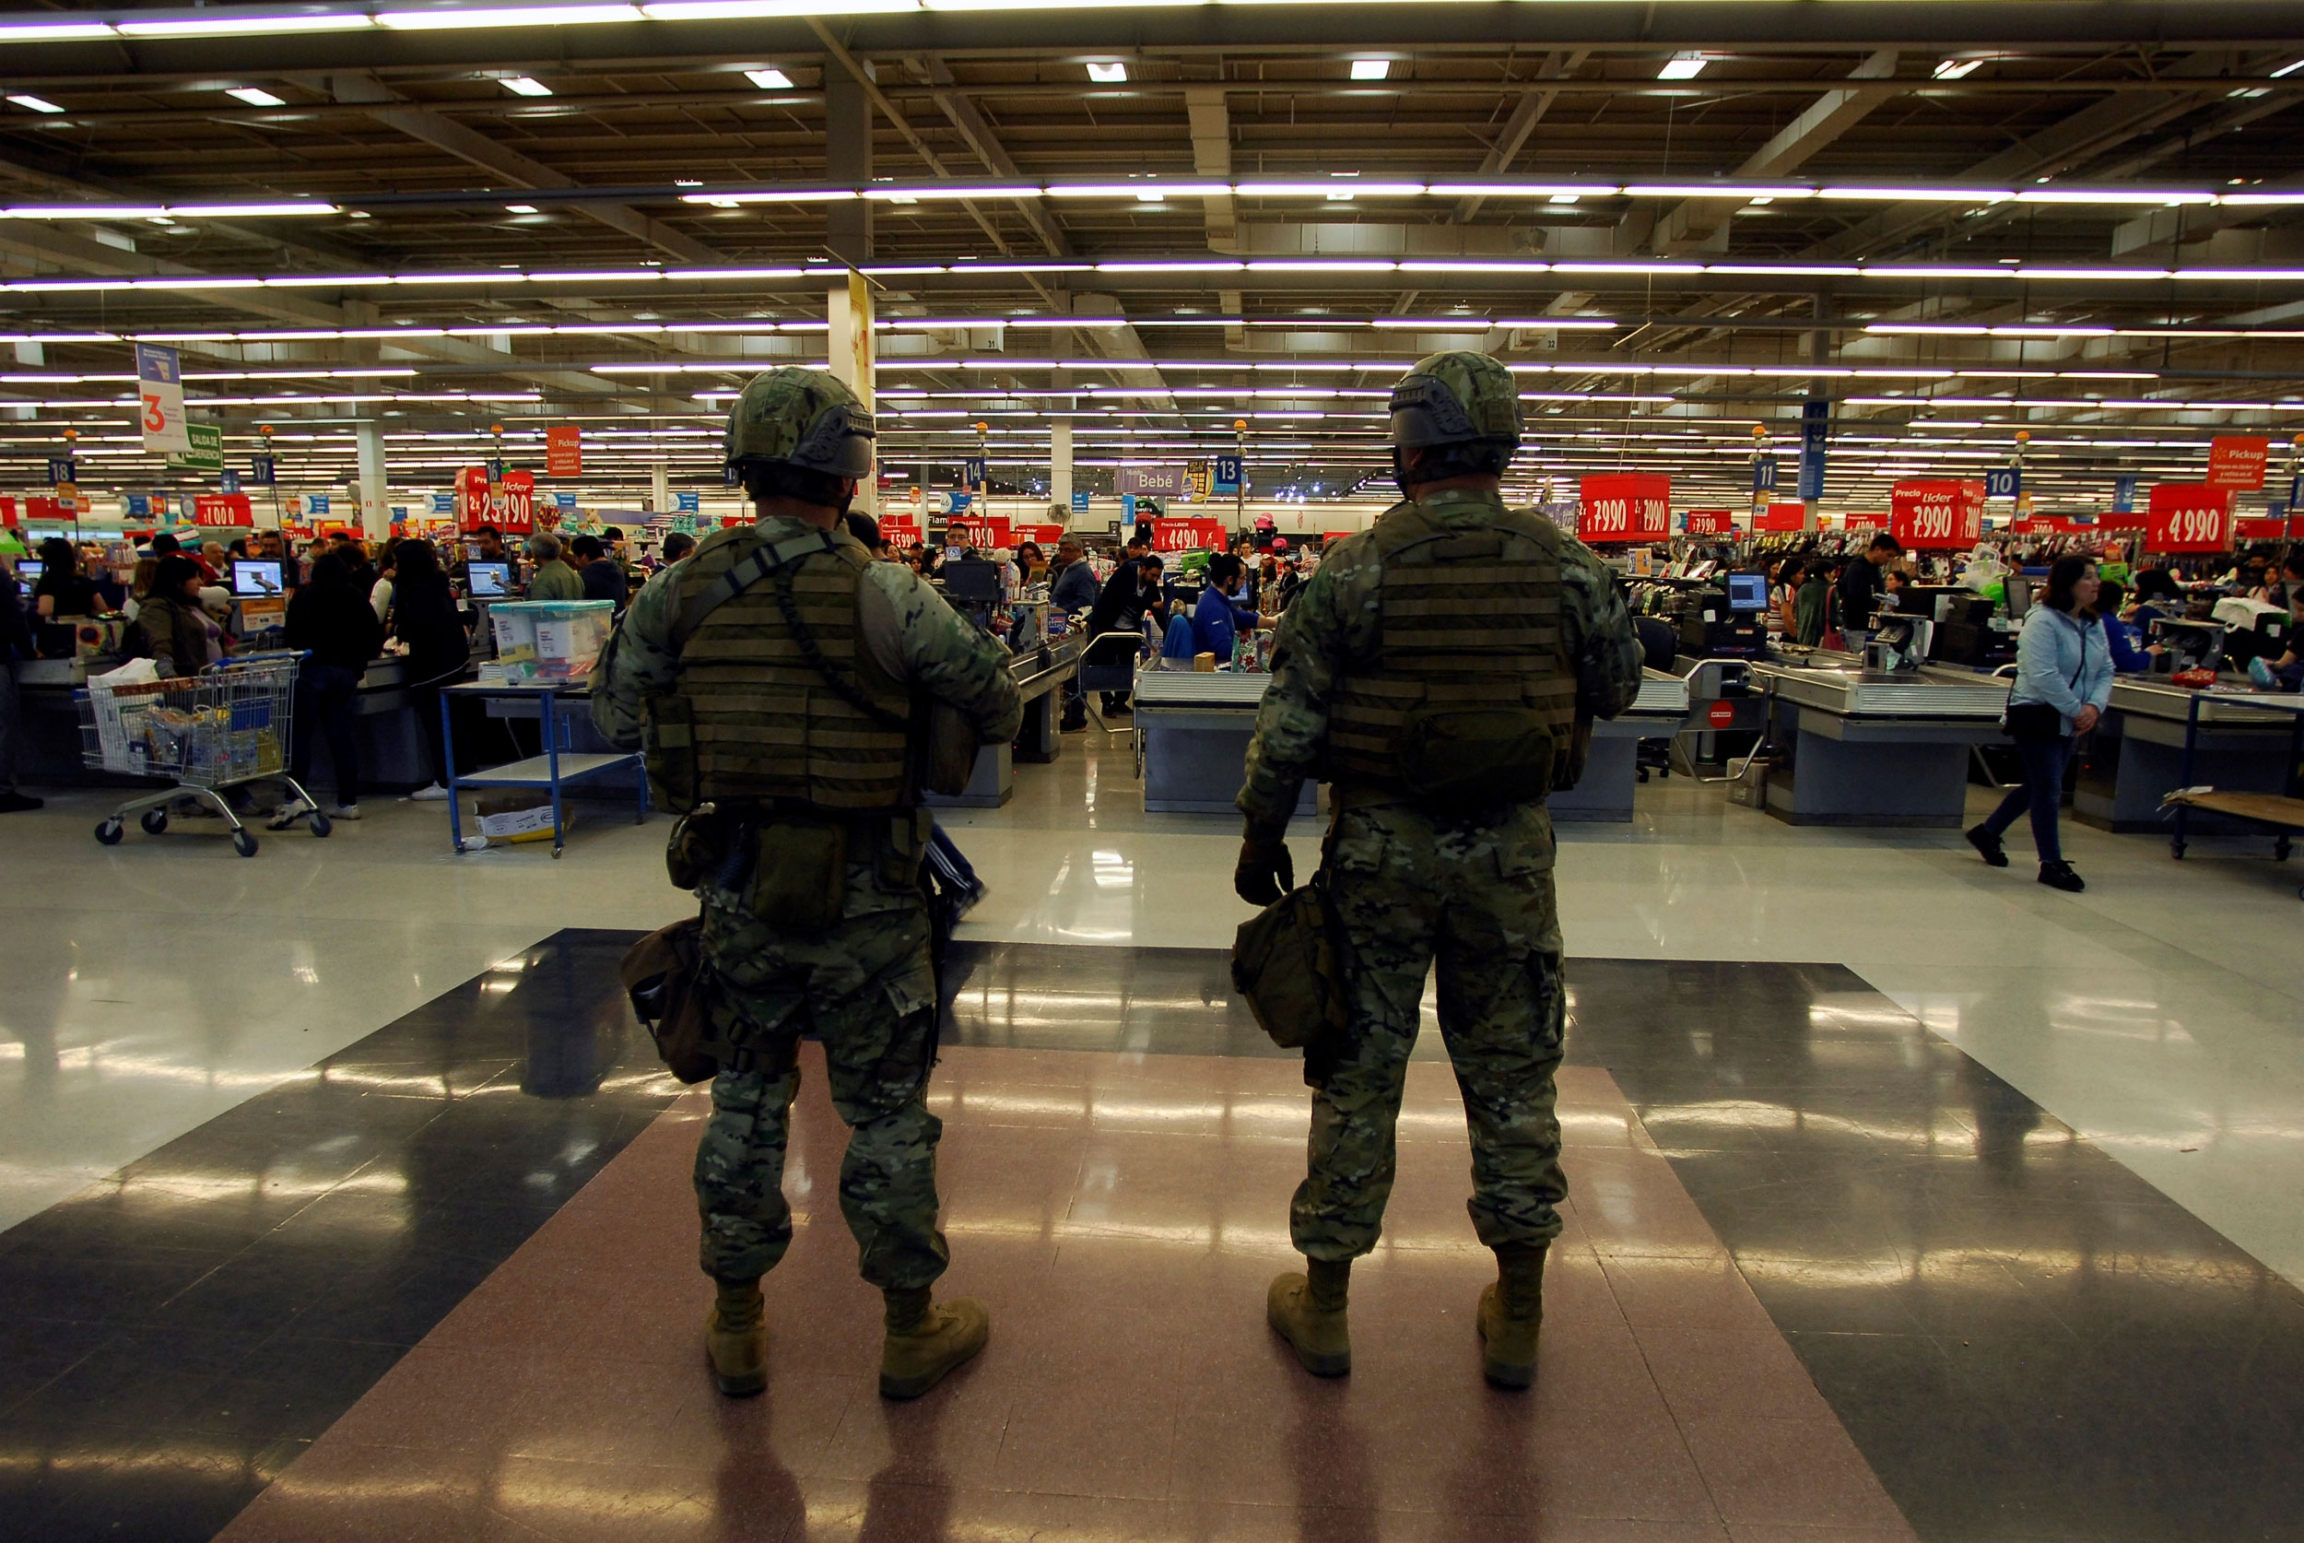 Soldiers are shown stand guard wearing full combat armor and helmets with supermarket checkout lines in the background.